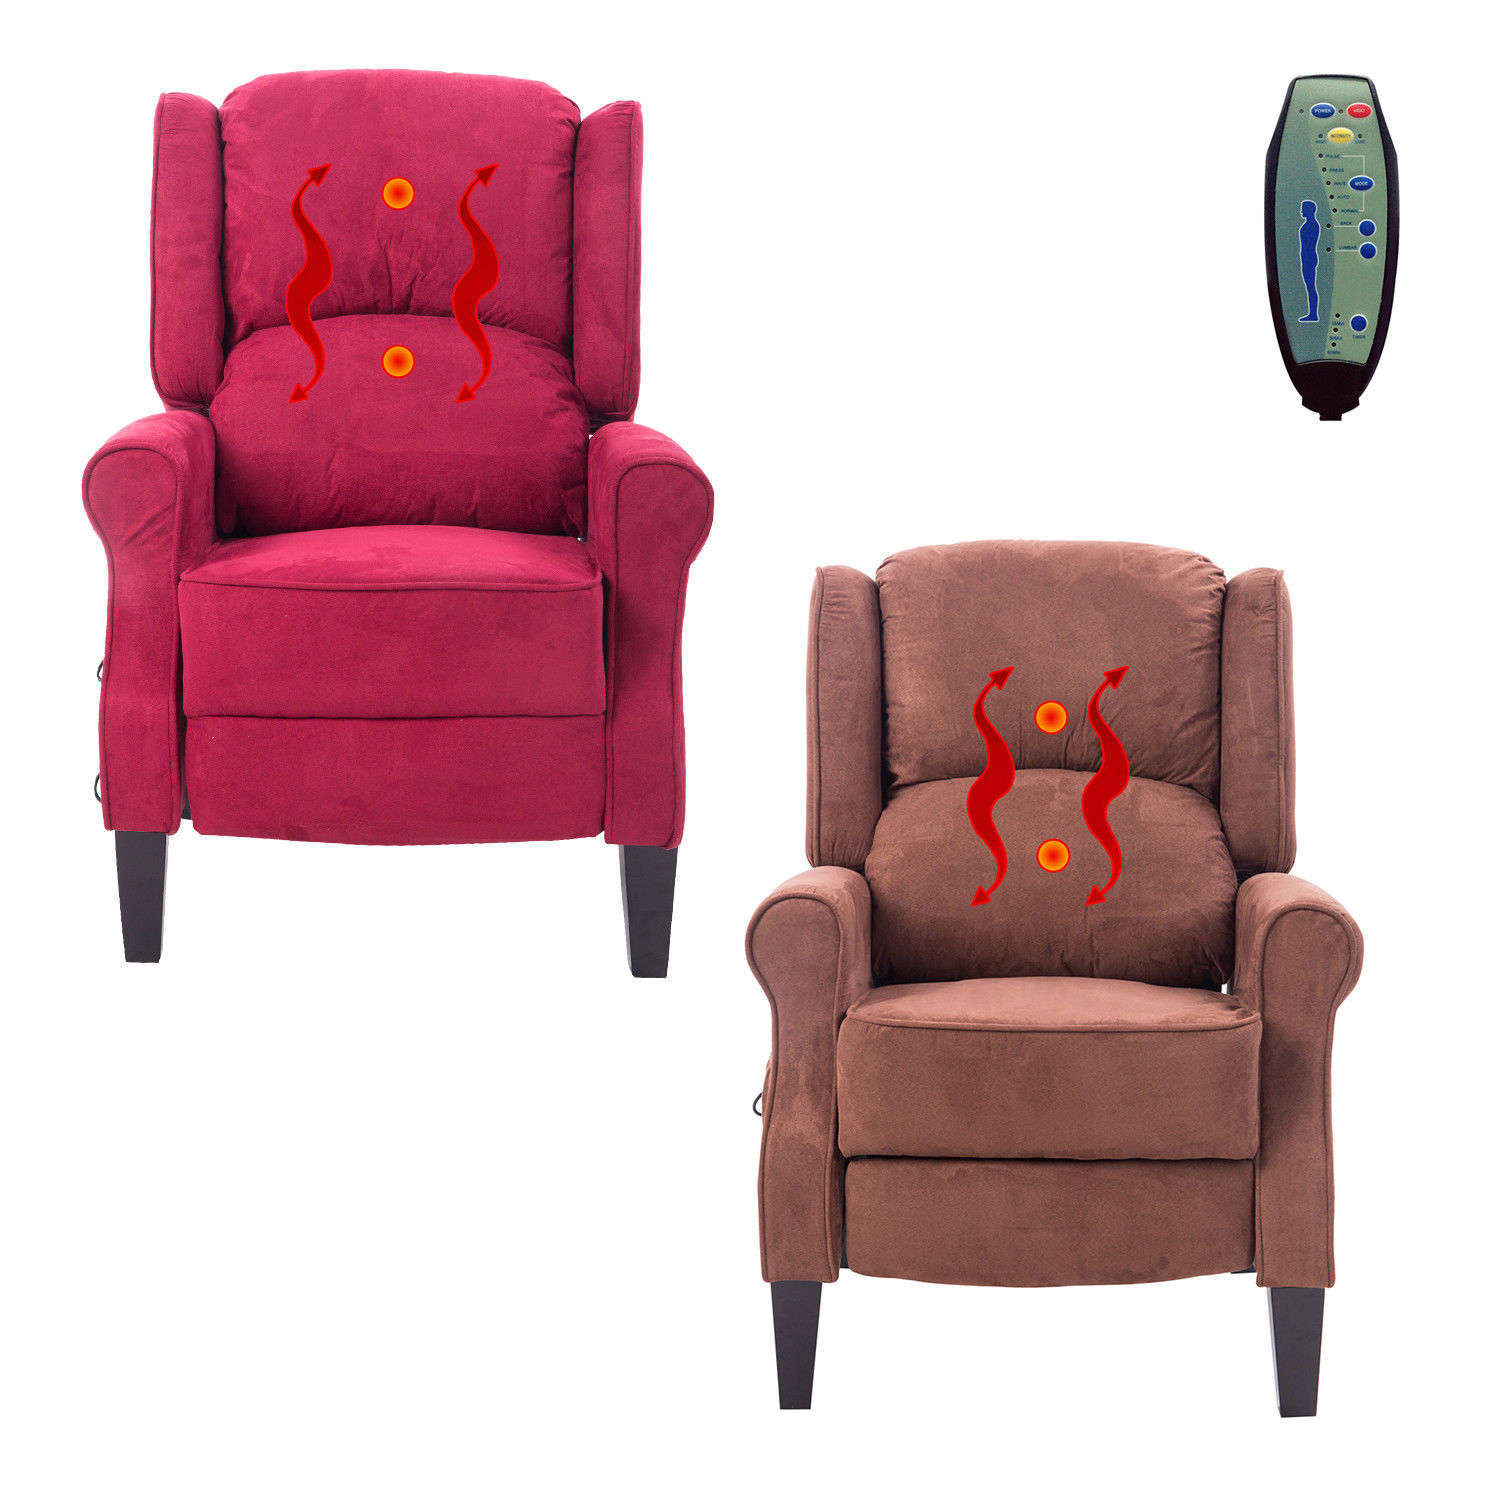 Gentil Deluxe Massage Recliner Chair Heated Sofa Ergonomic Lounge Suede W/ Control  New